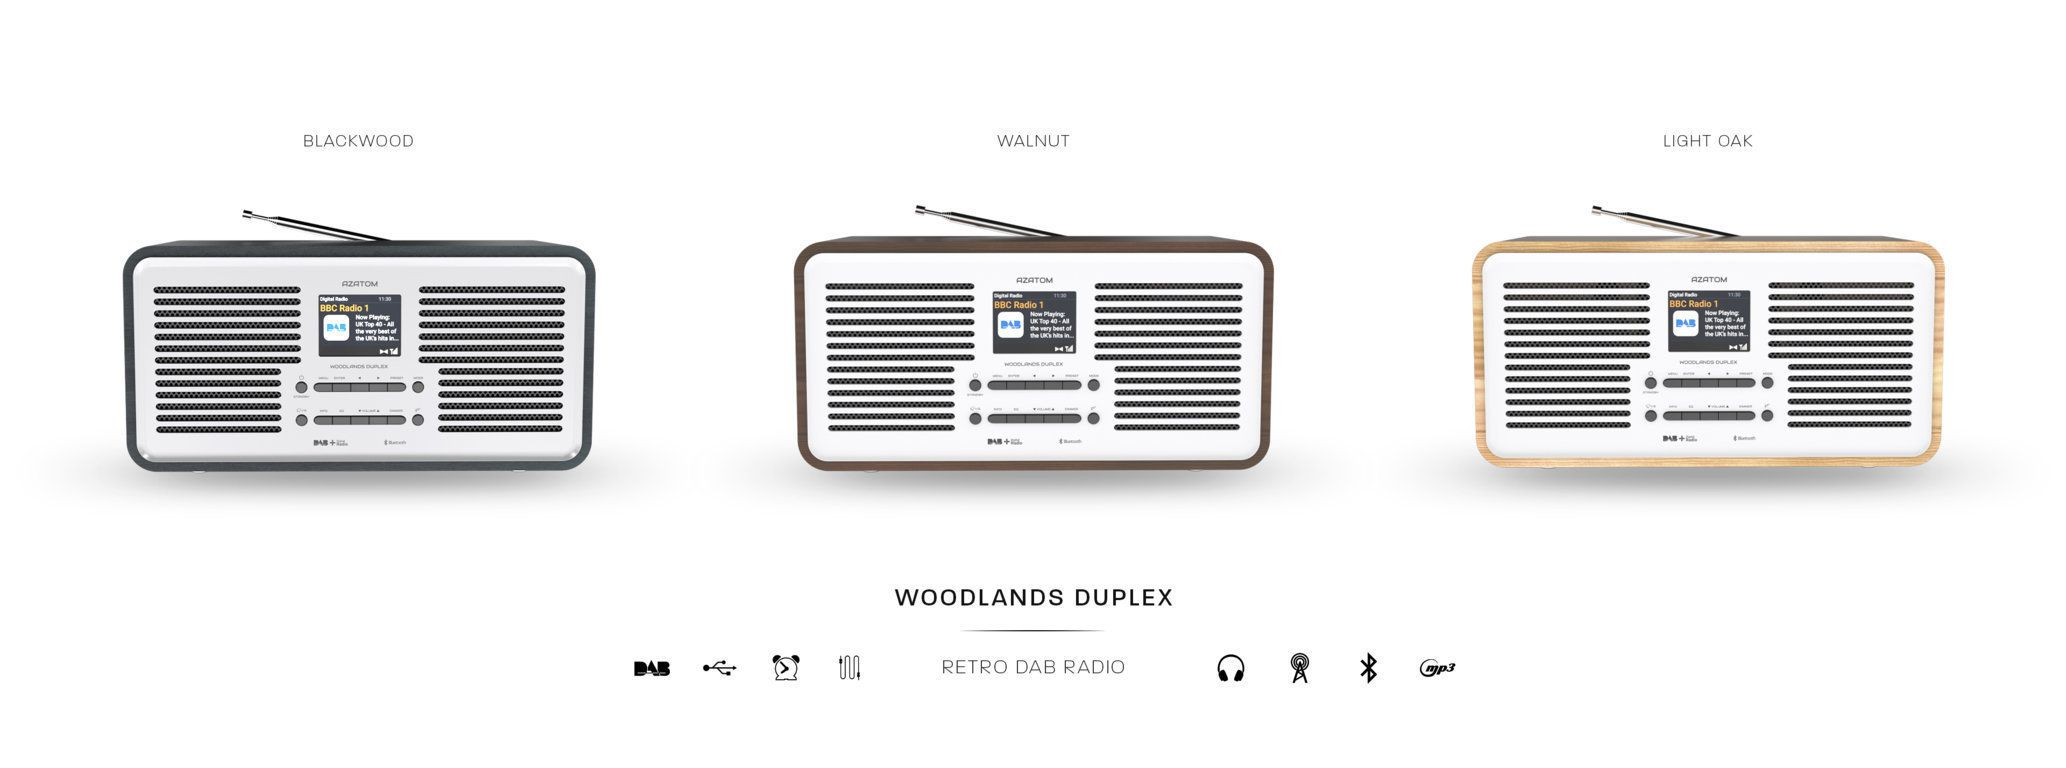 Woodlands Duplex DAB Radio